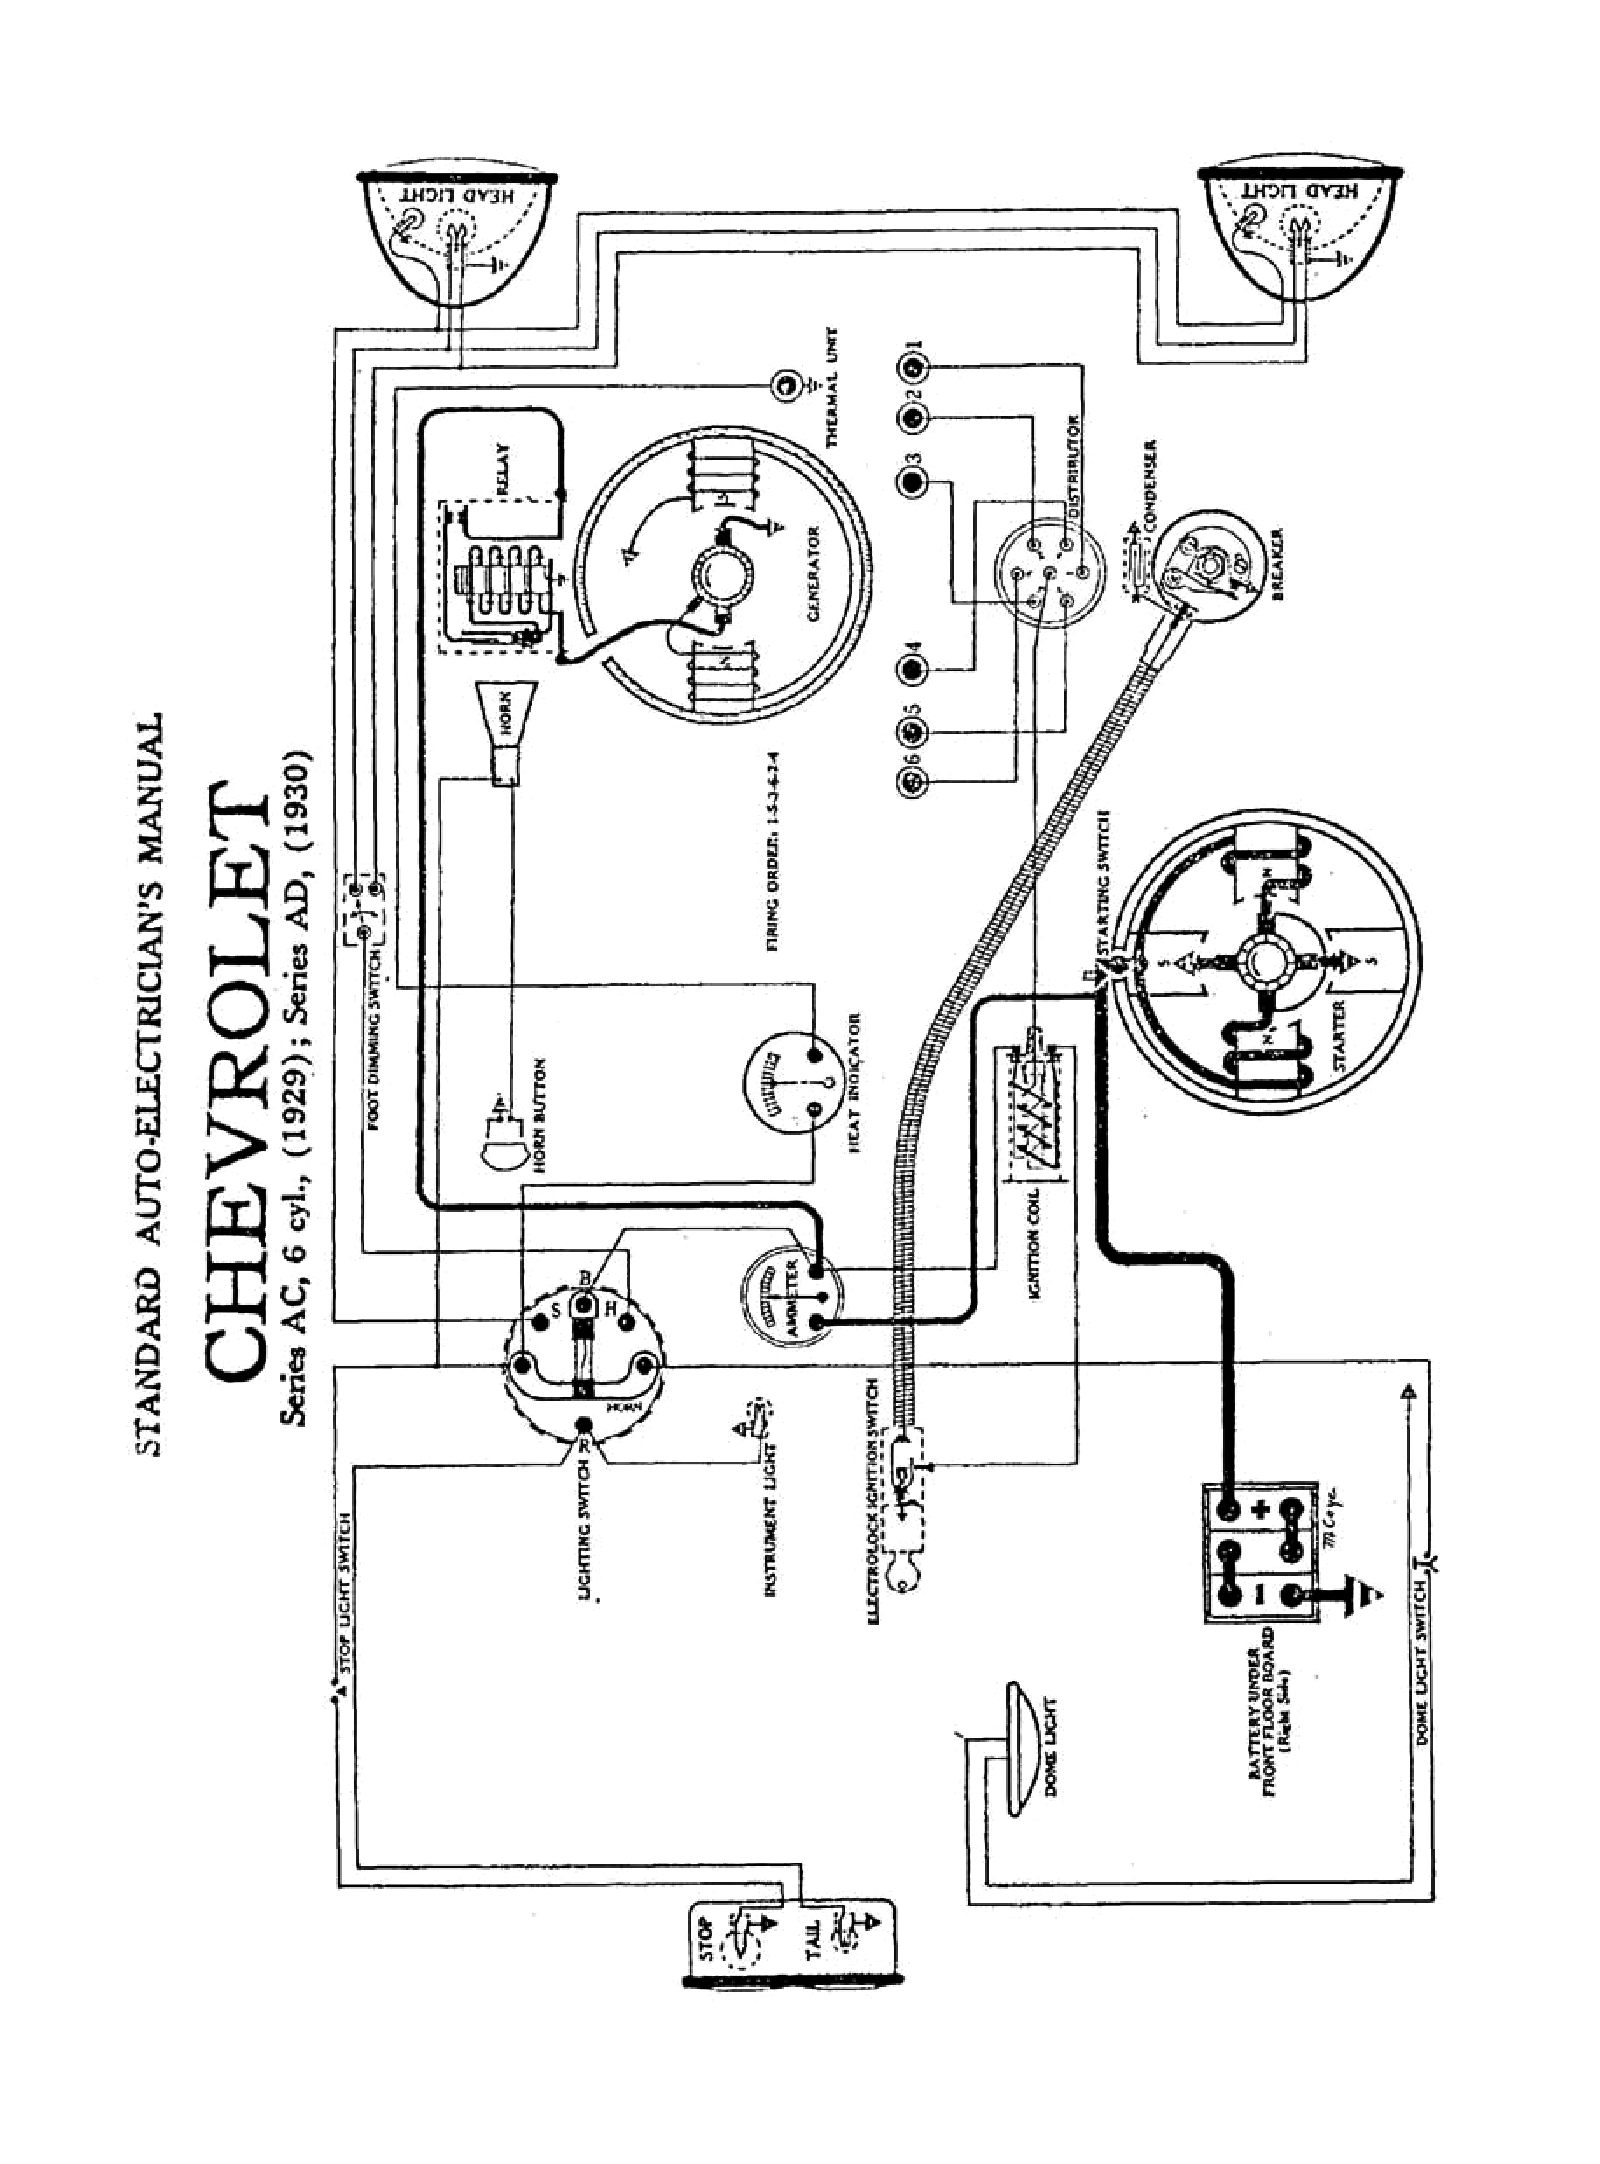 1950 chevy wiring diagram online wiring diagram datawiring schematics in series diagram wiring diagramchevy wiring diagrams1930 series ad model 1931, 1931 wiring